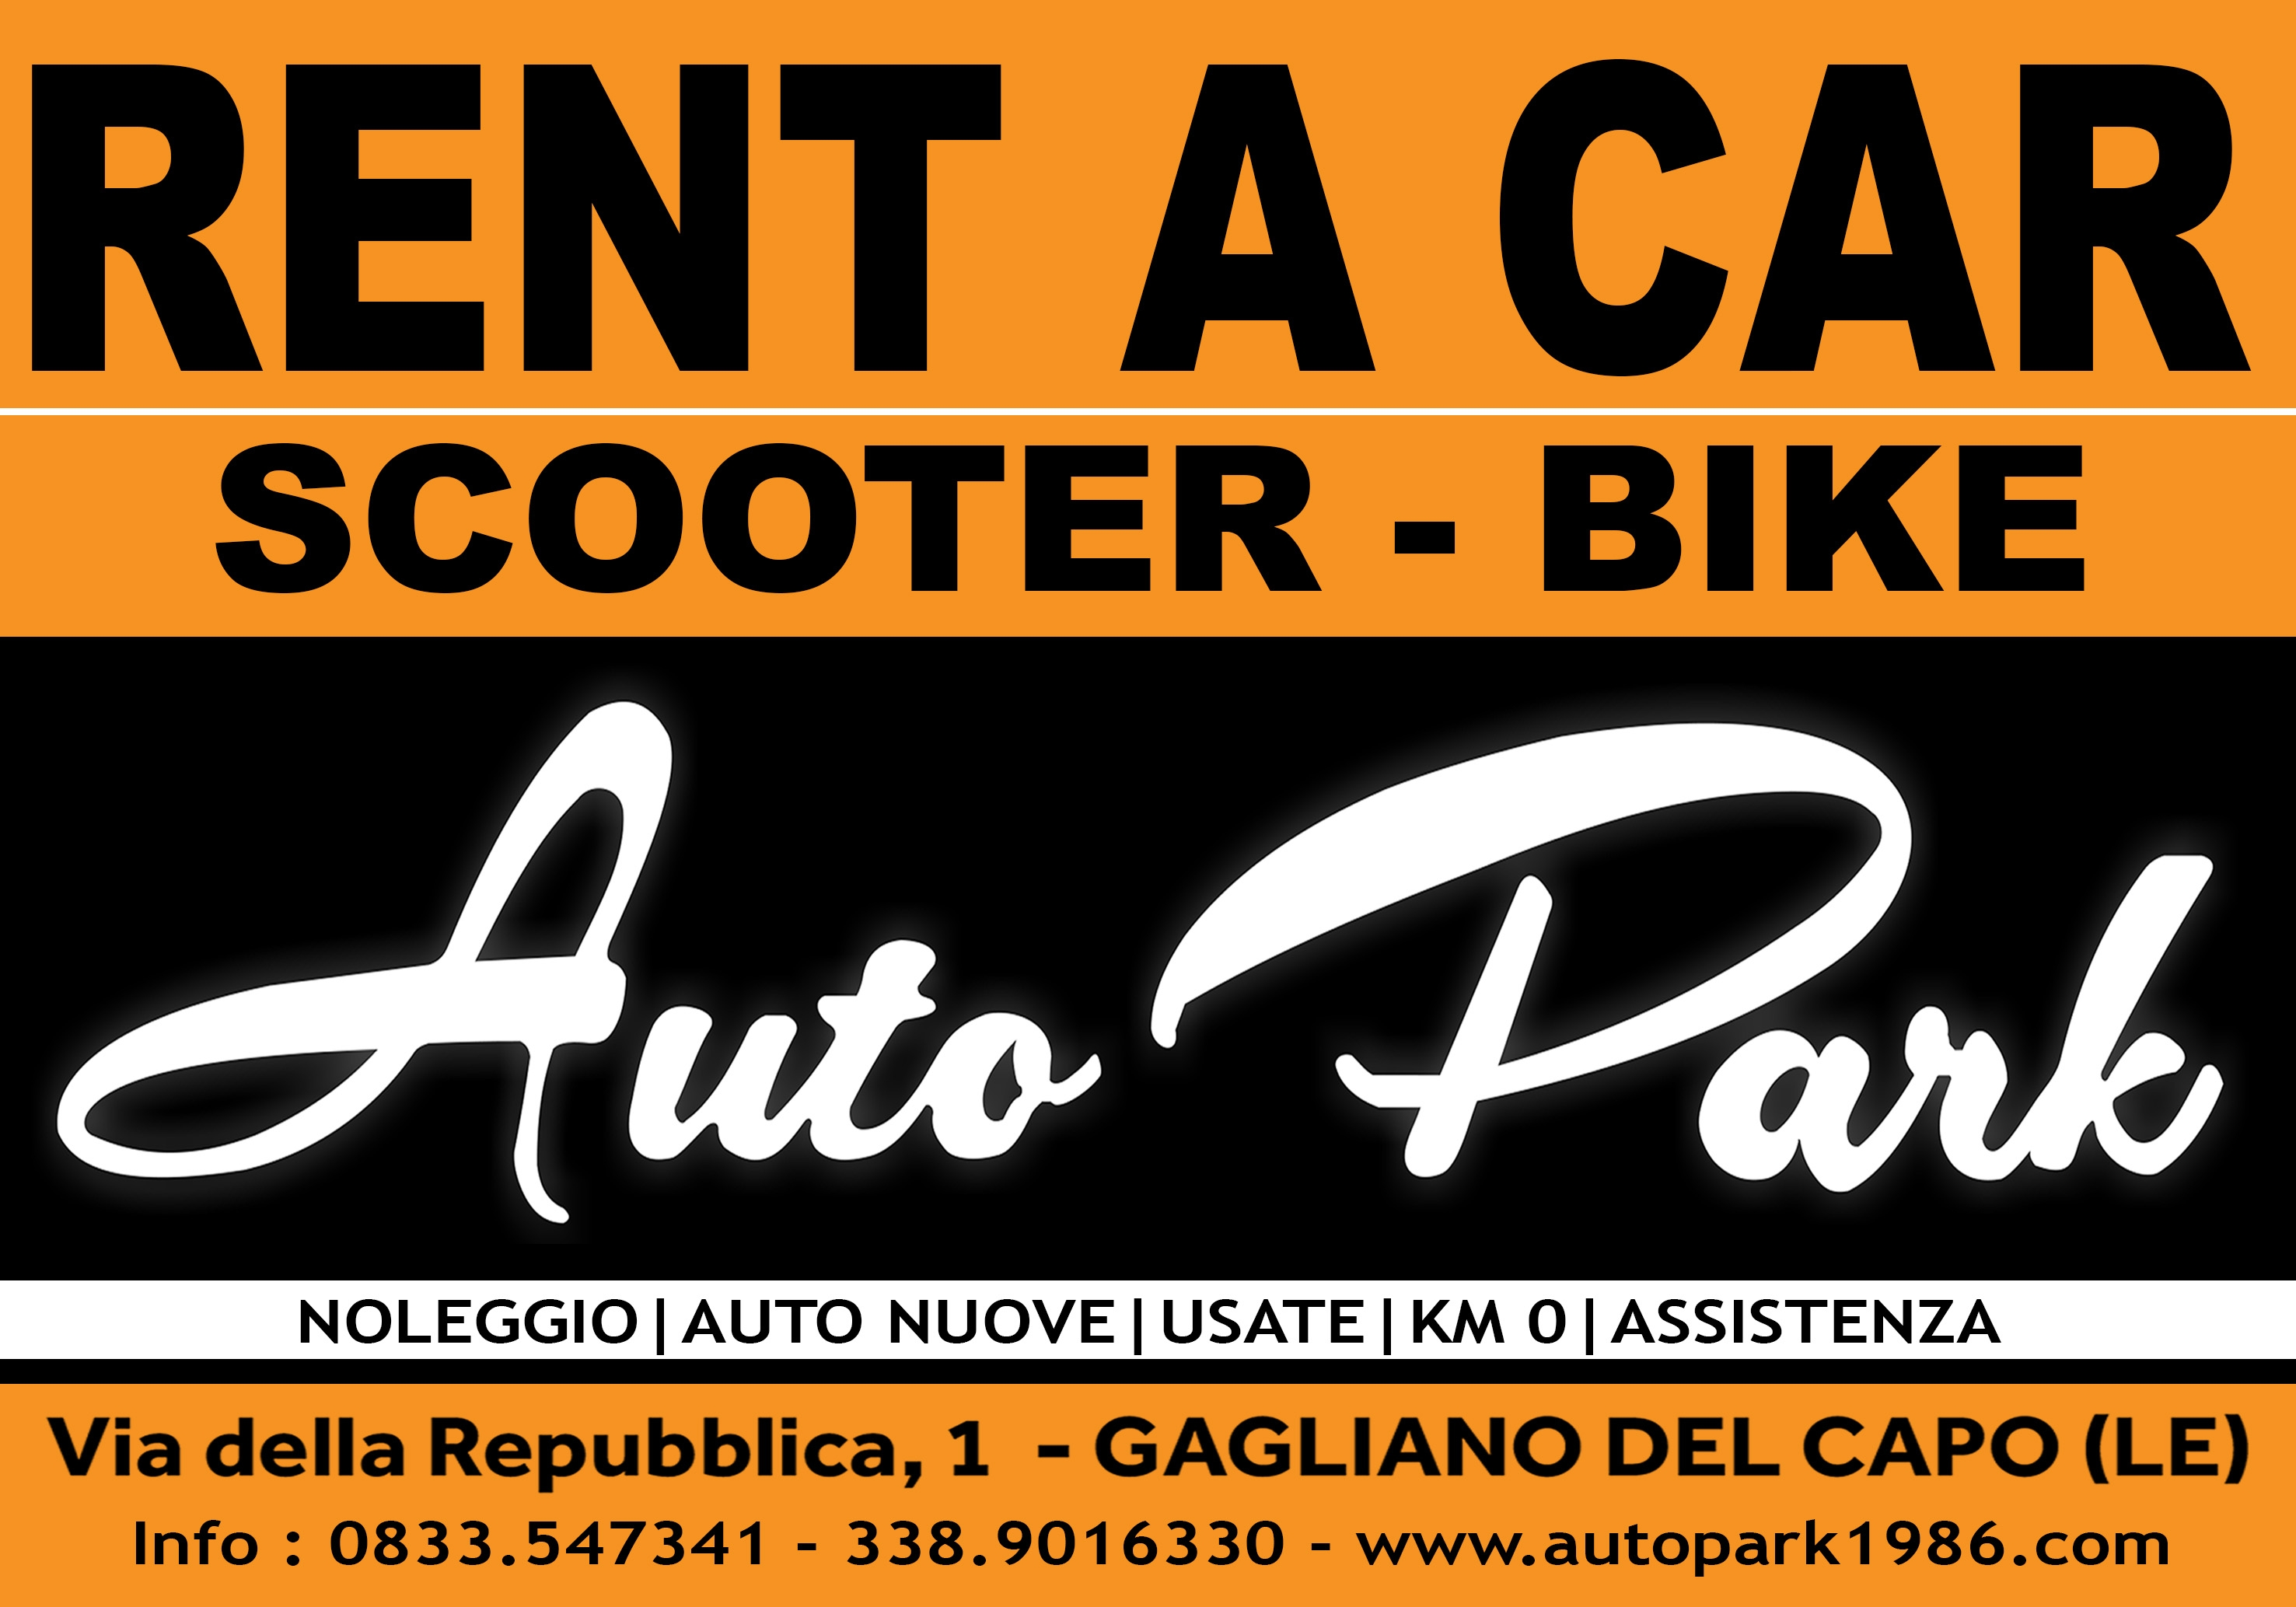 Rent a Car, Scooter & Bike